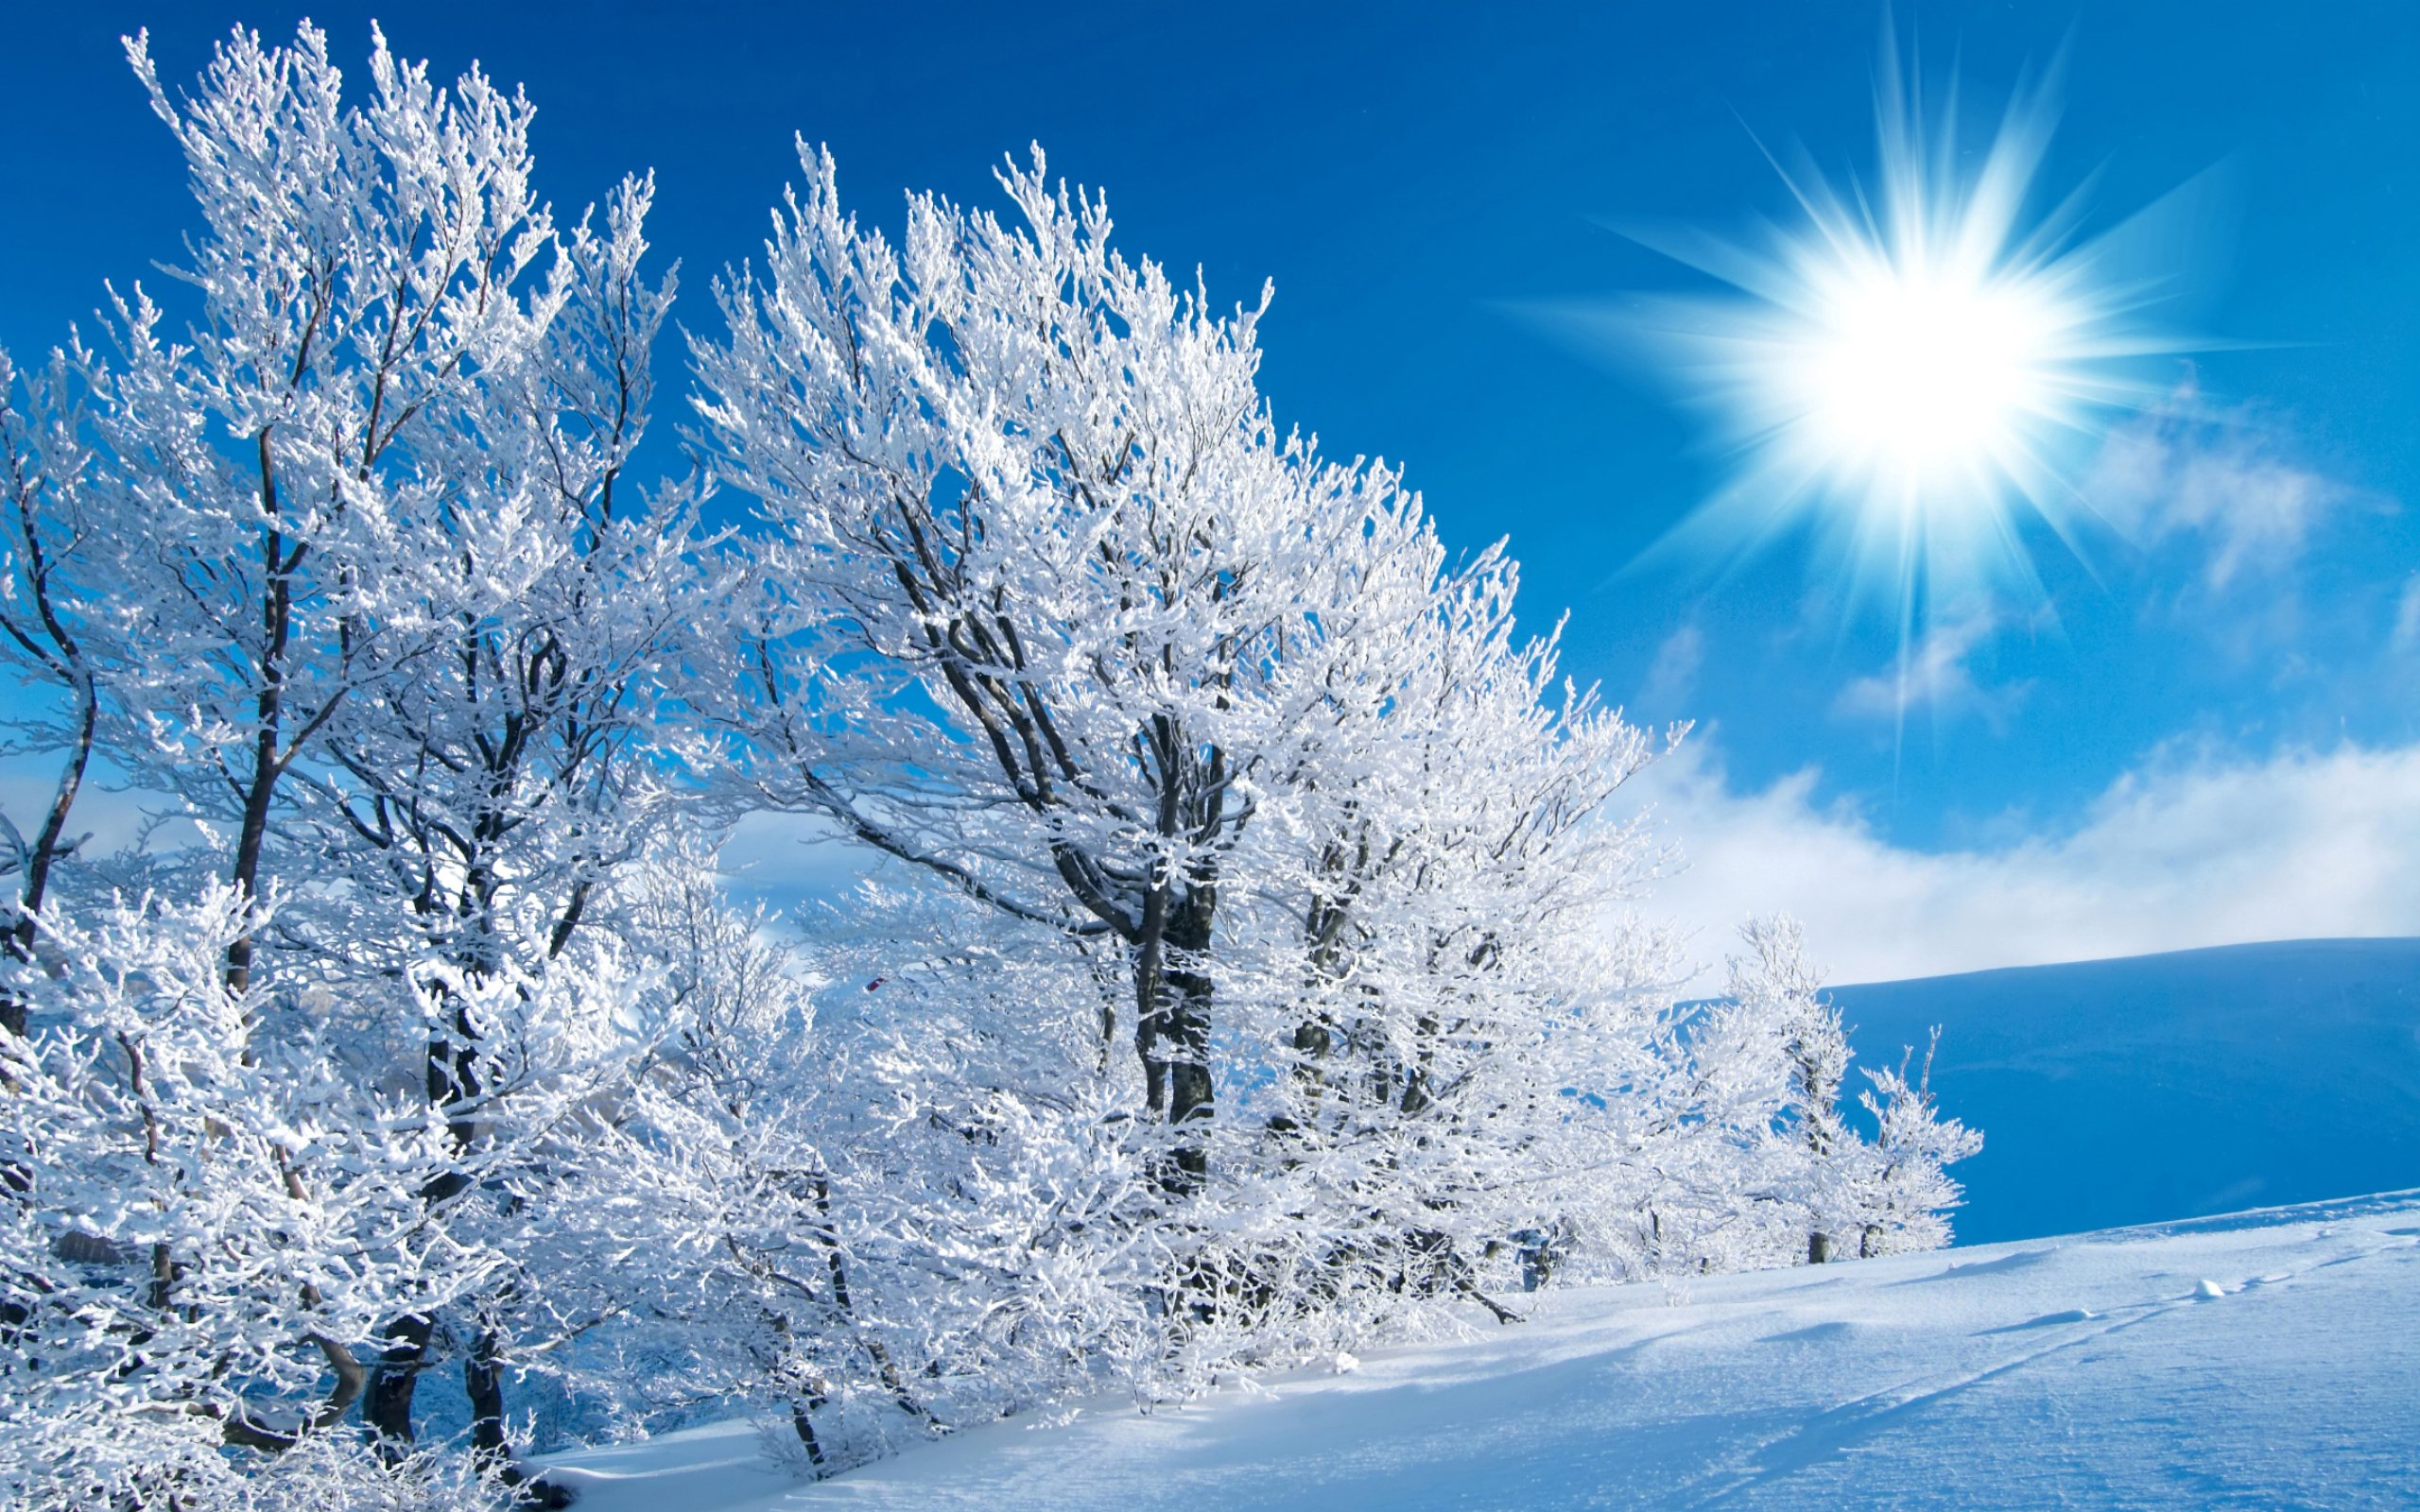 Winter Scenes HD Wallpaper 2560x1600